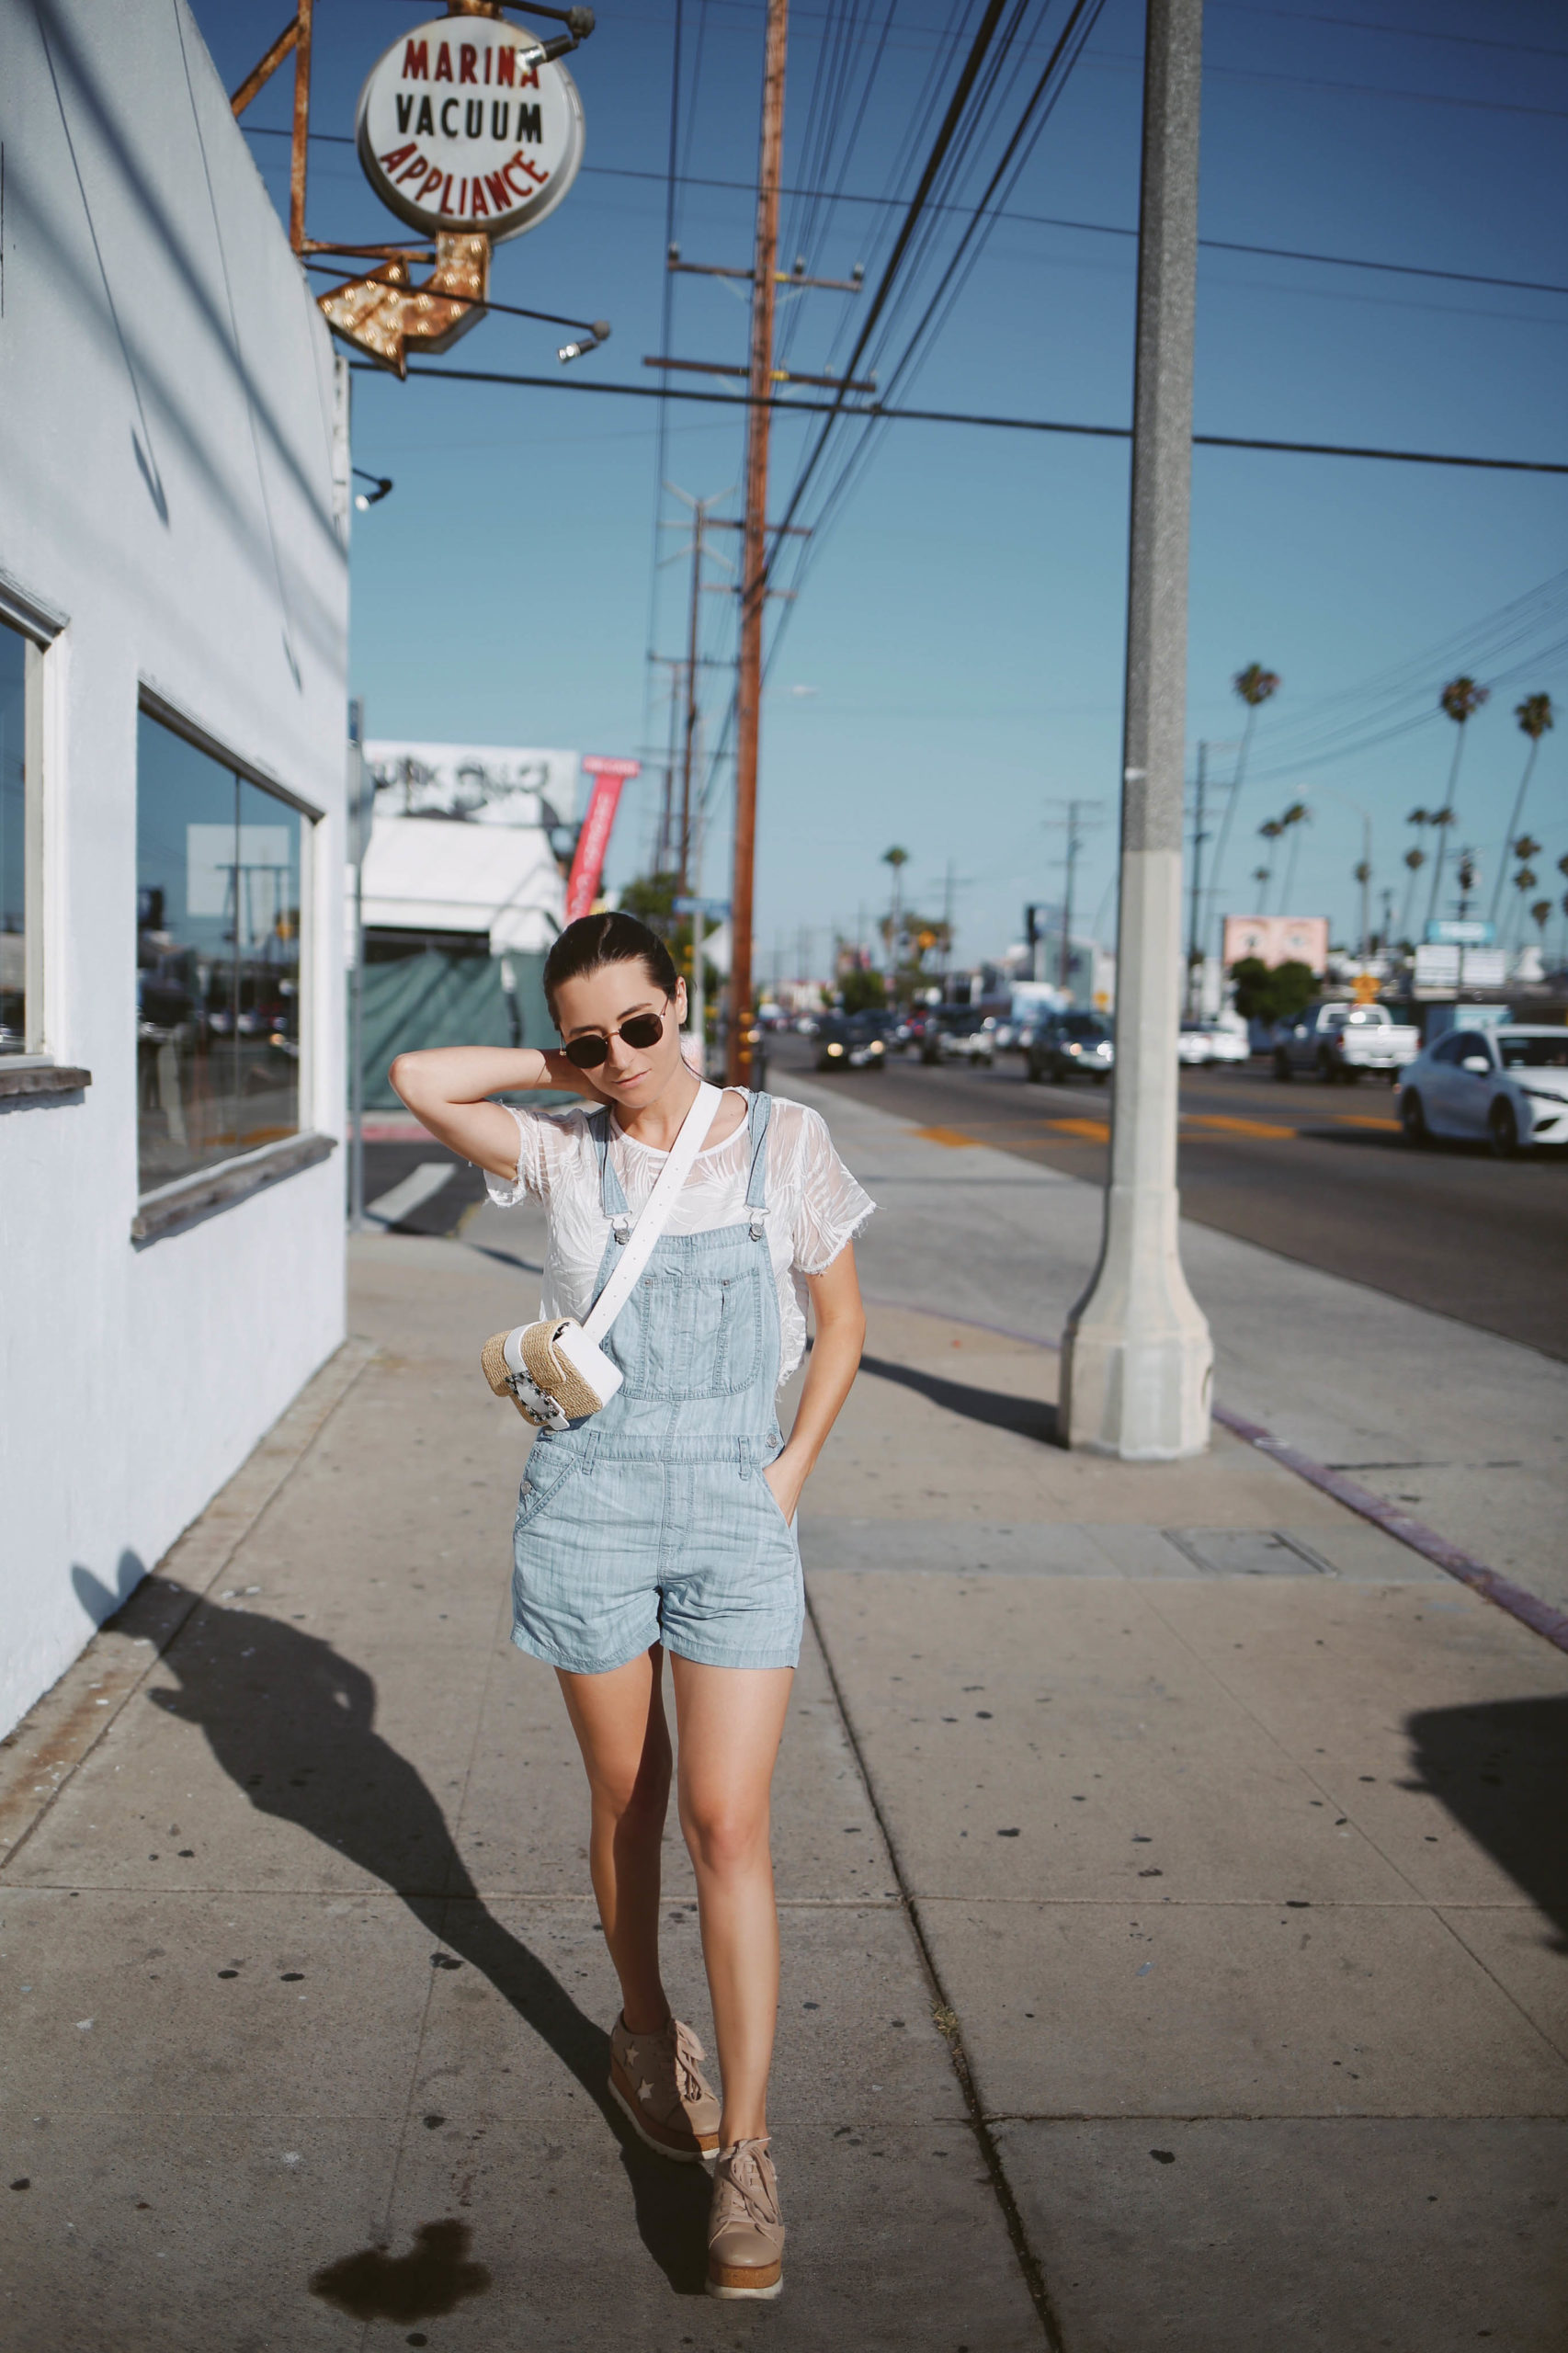 Lincoln Boulevard - Venice - Visit Venice Beach Venice Beach Inspiration by French fashion blogger julia comil in Los Angeles